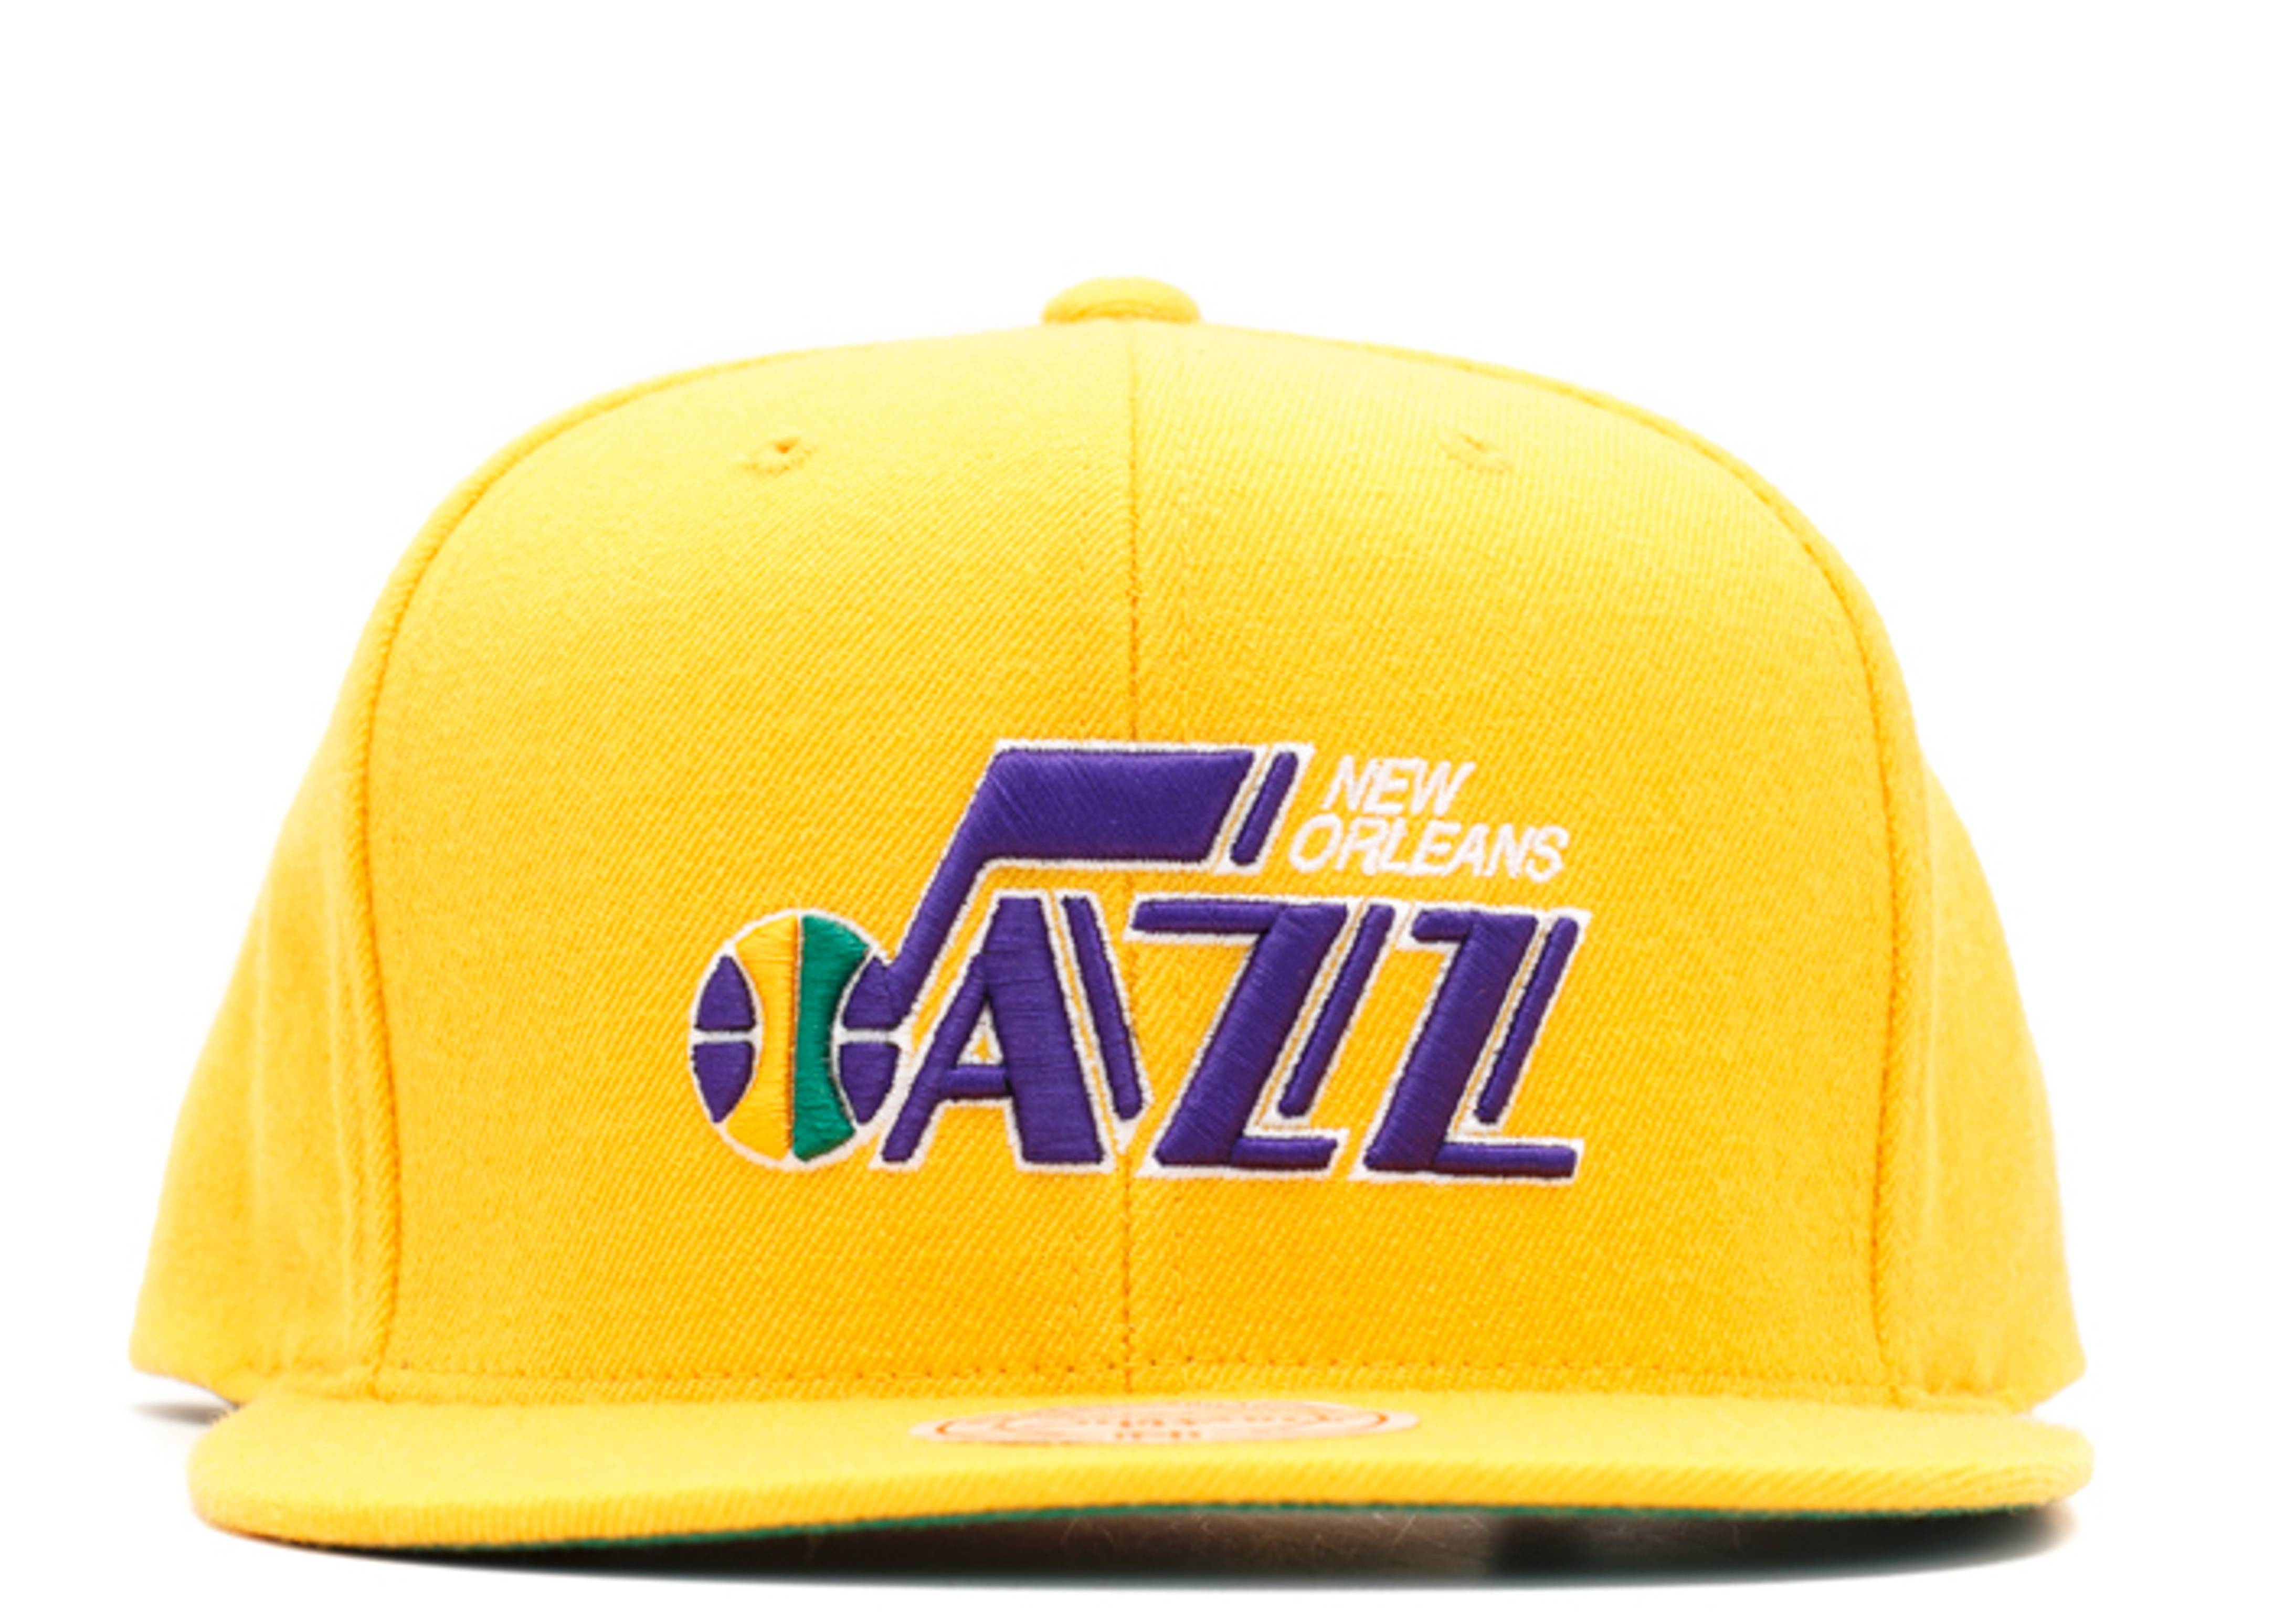 new orleans jazz snap-back